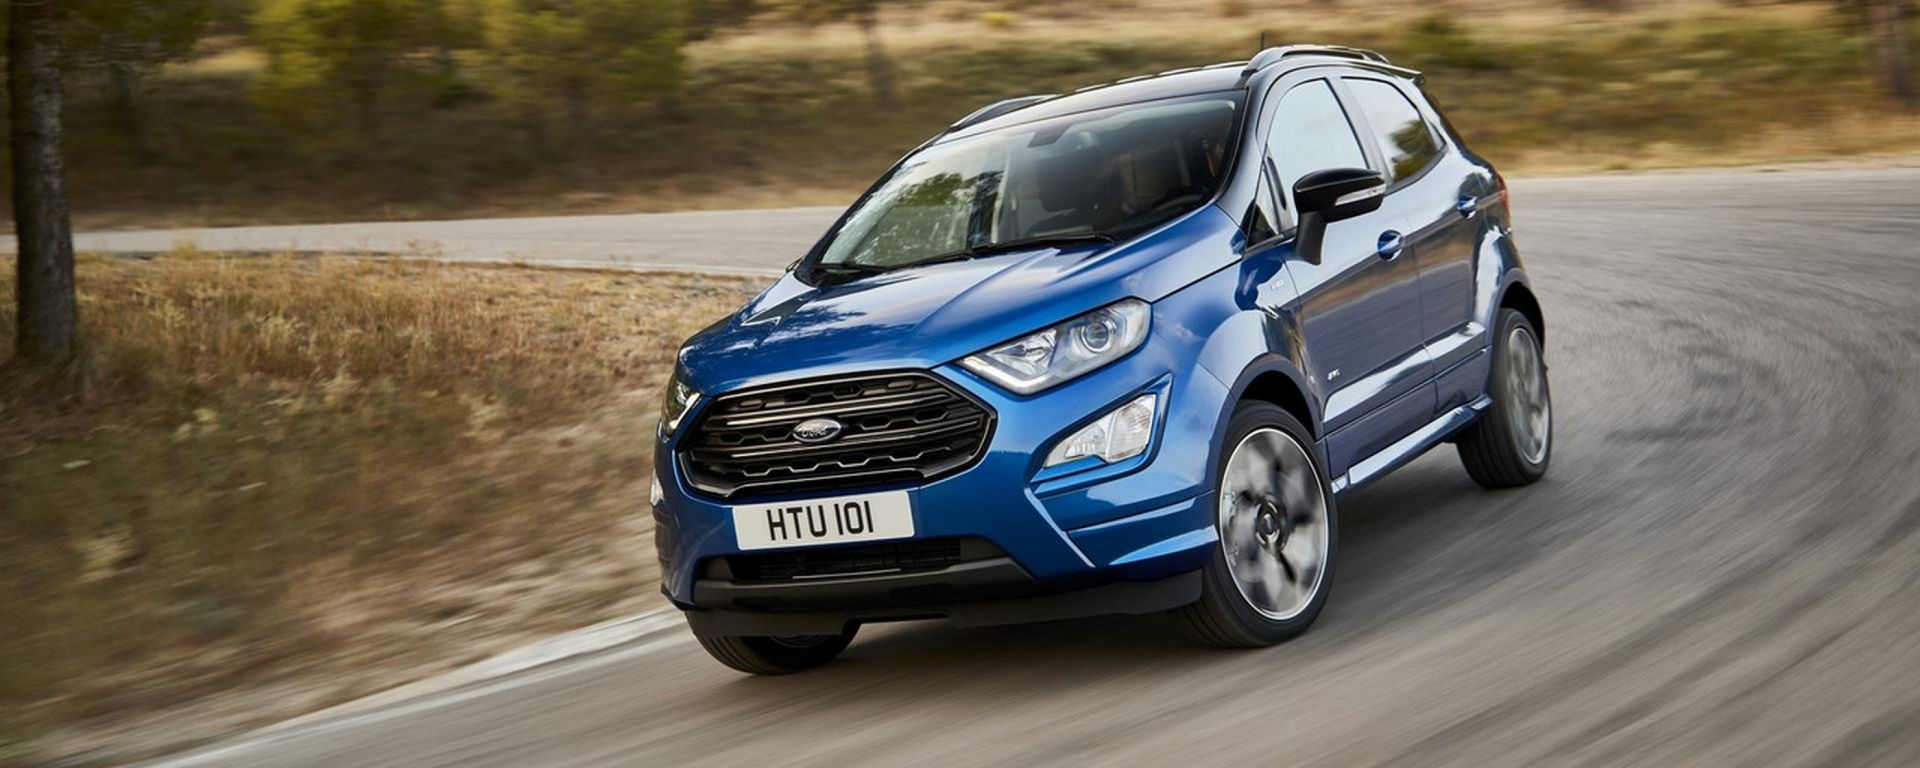 Ford EcoSport 2018: SUV 4x4 a tutta...Fiesta! [VIDEO]